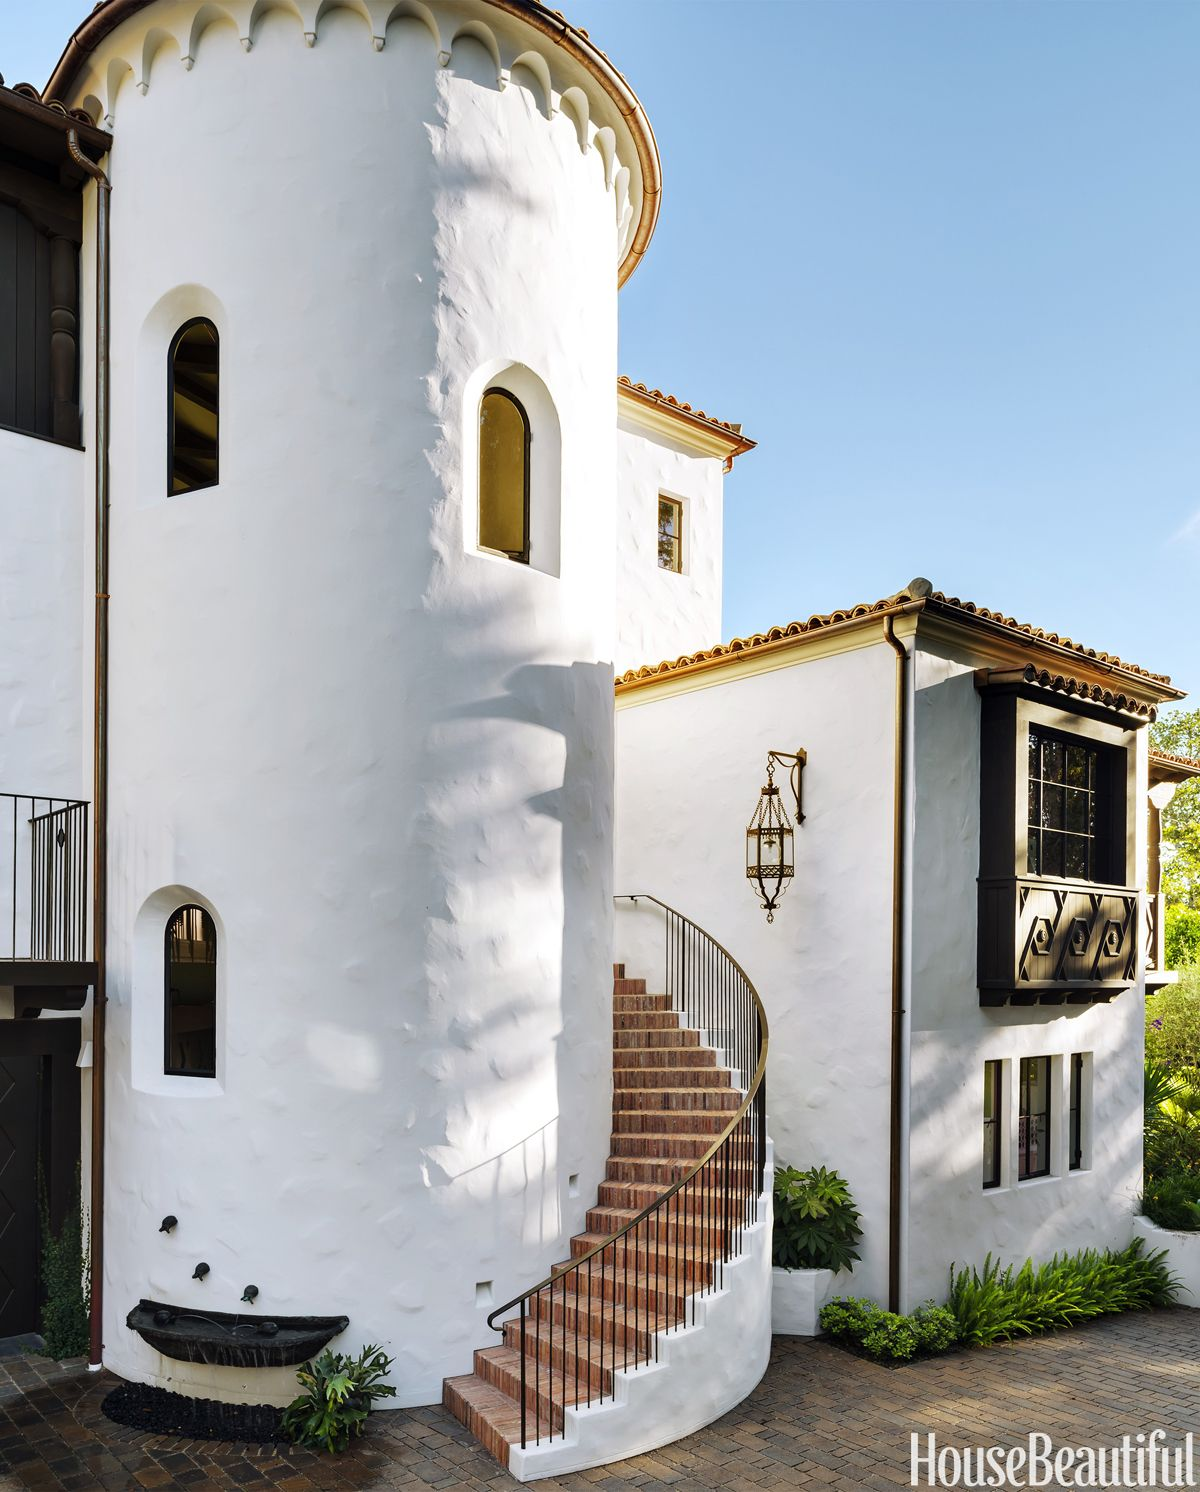 Spanish Hacienda Style Homes: Inside A Spanish Colonial That's Full Of Heart And Soul